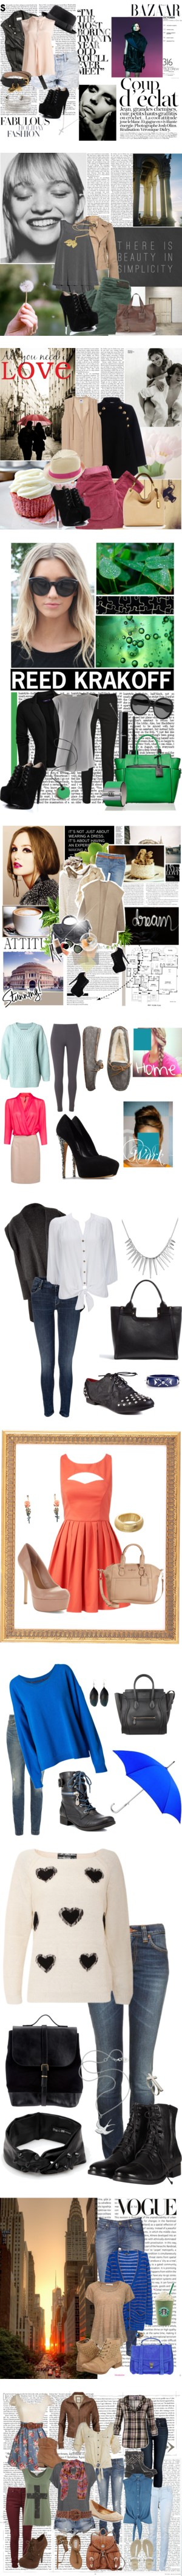 """""""smile.smile.smile."""" by laura-elena304 ❤ liked on Polyvore"""